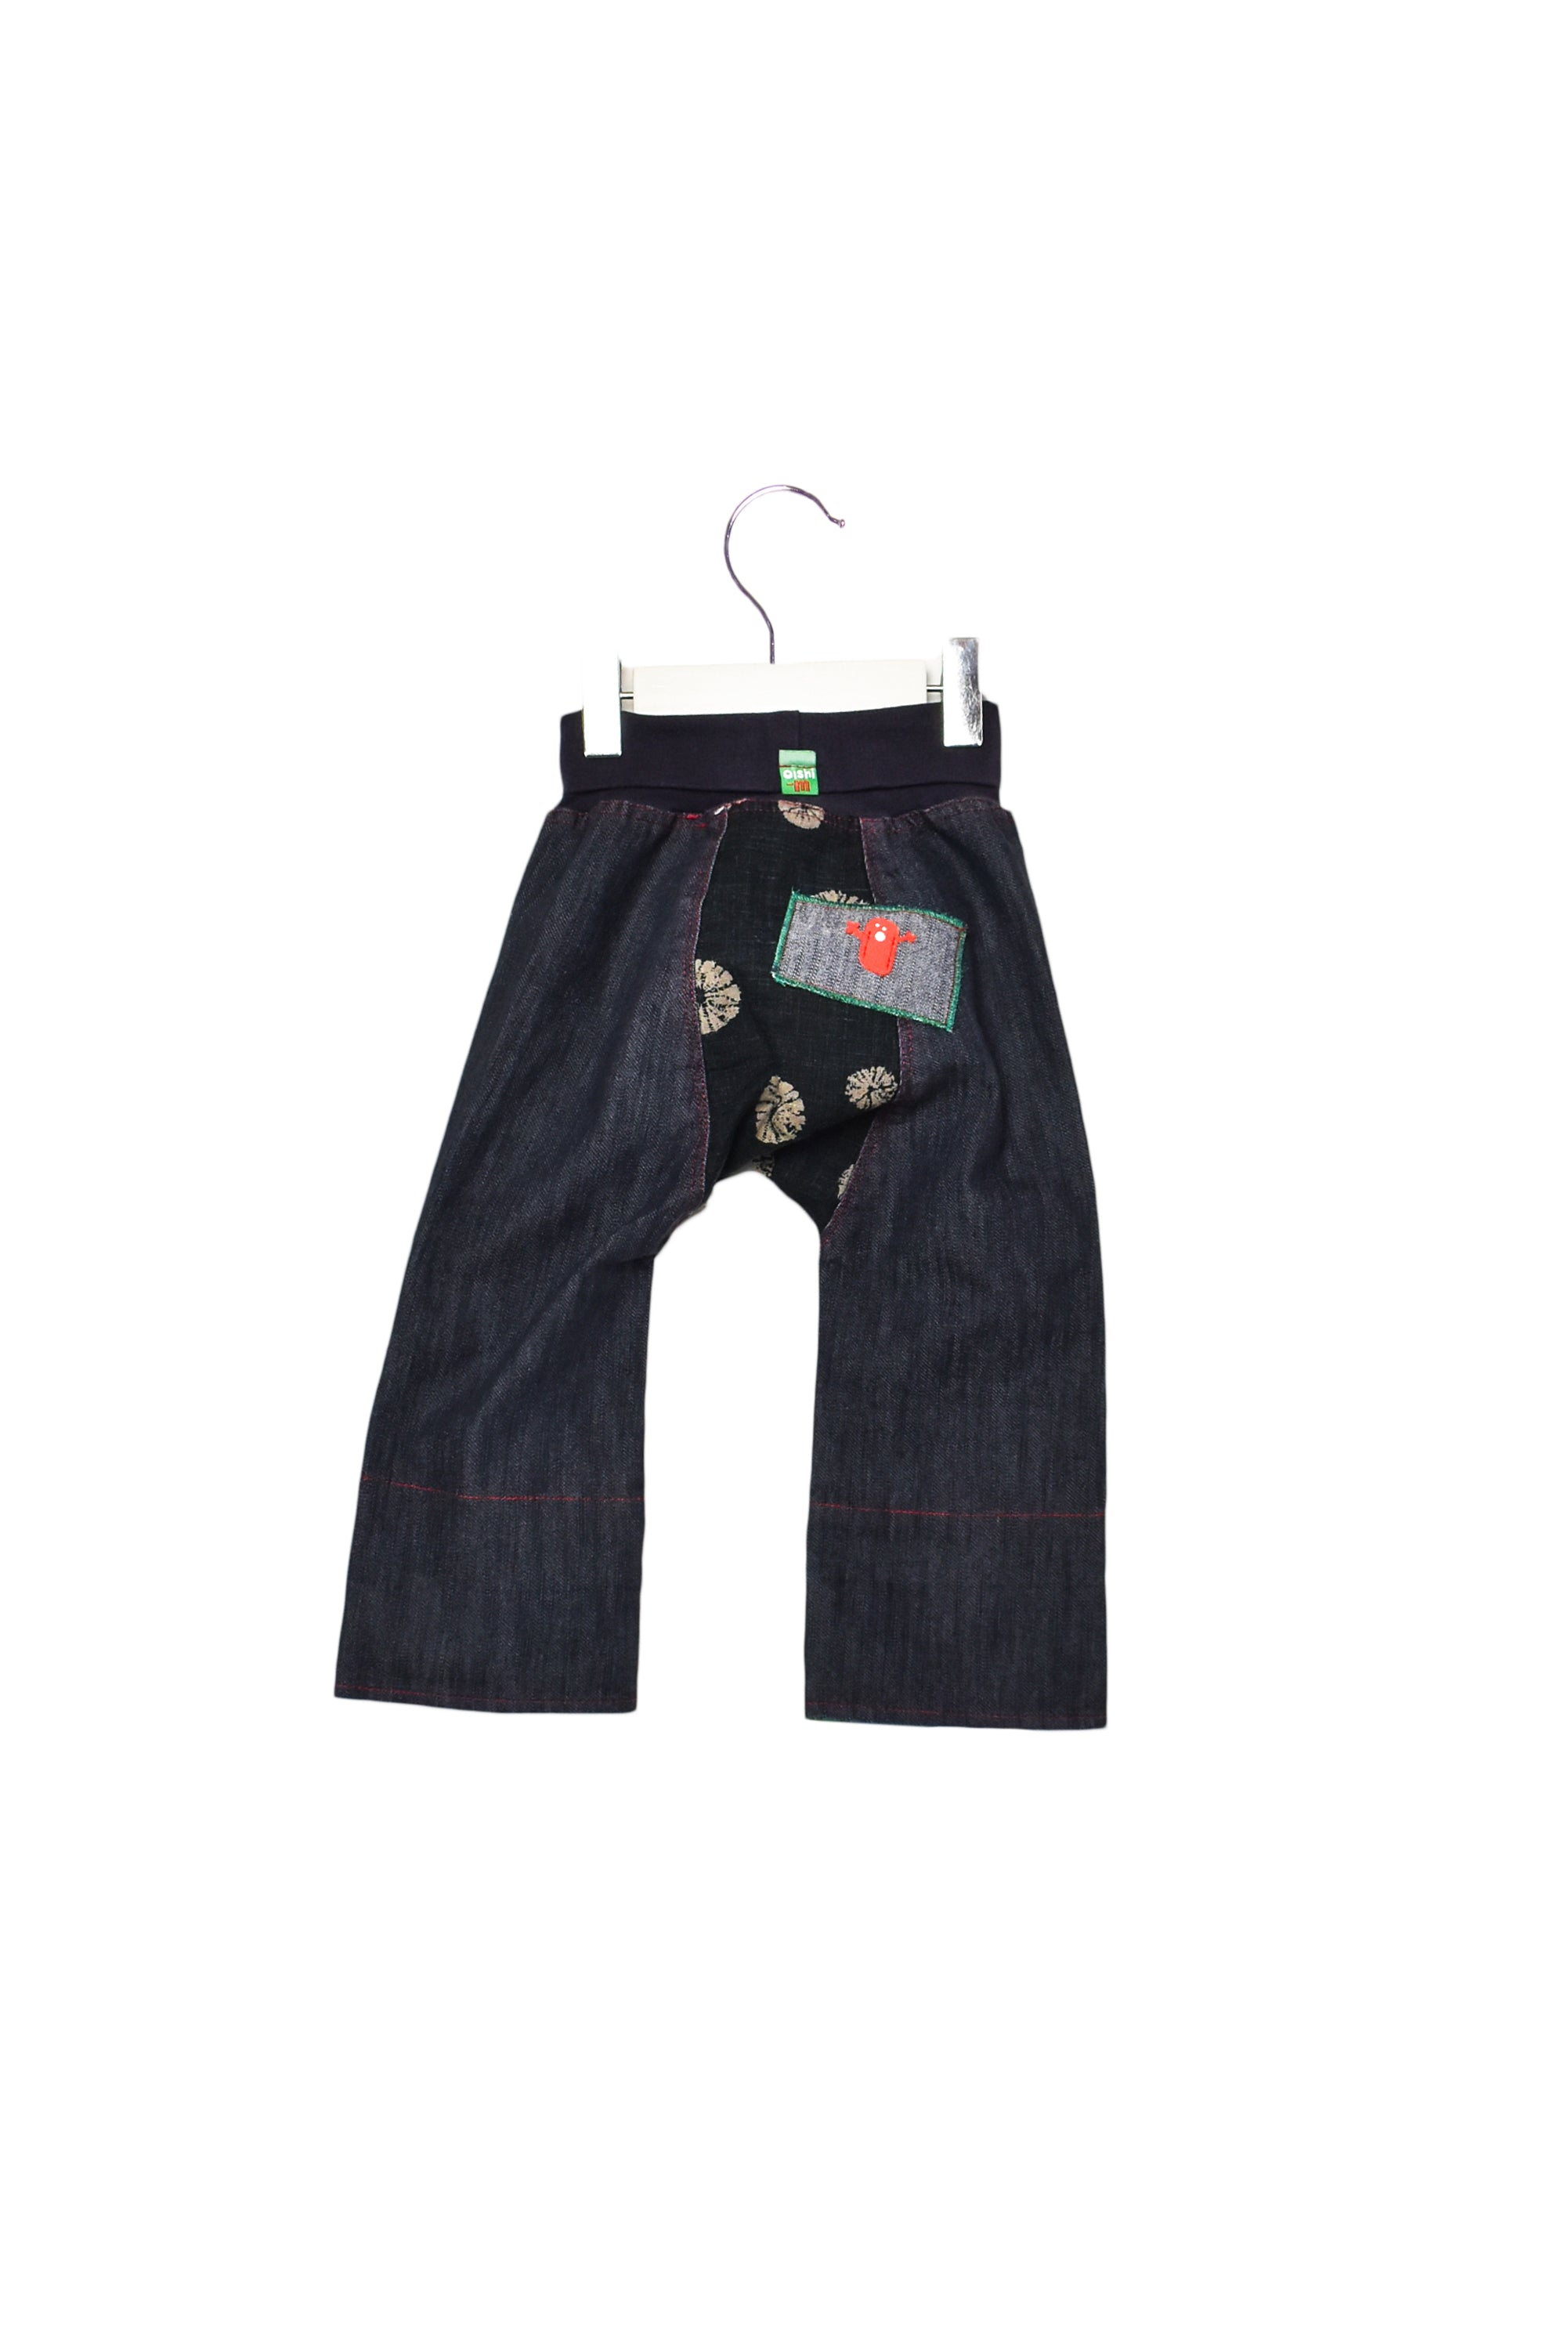 10012180 Oishi-m Baby ~ Jeans 6-15M at Retykle